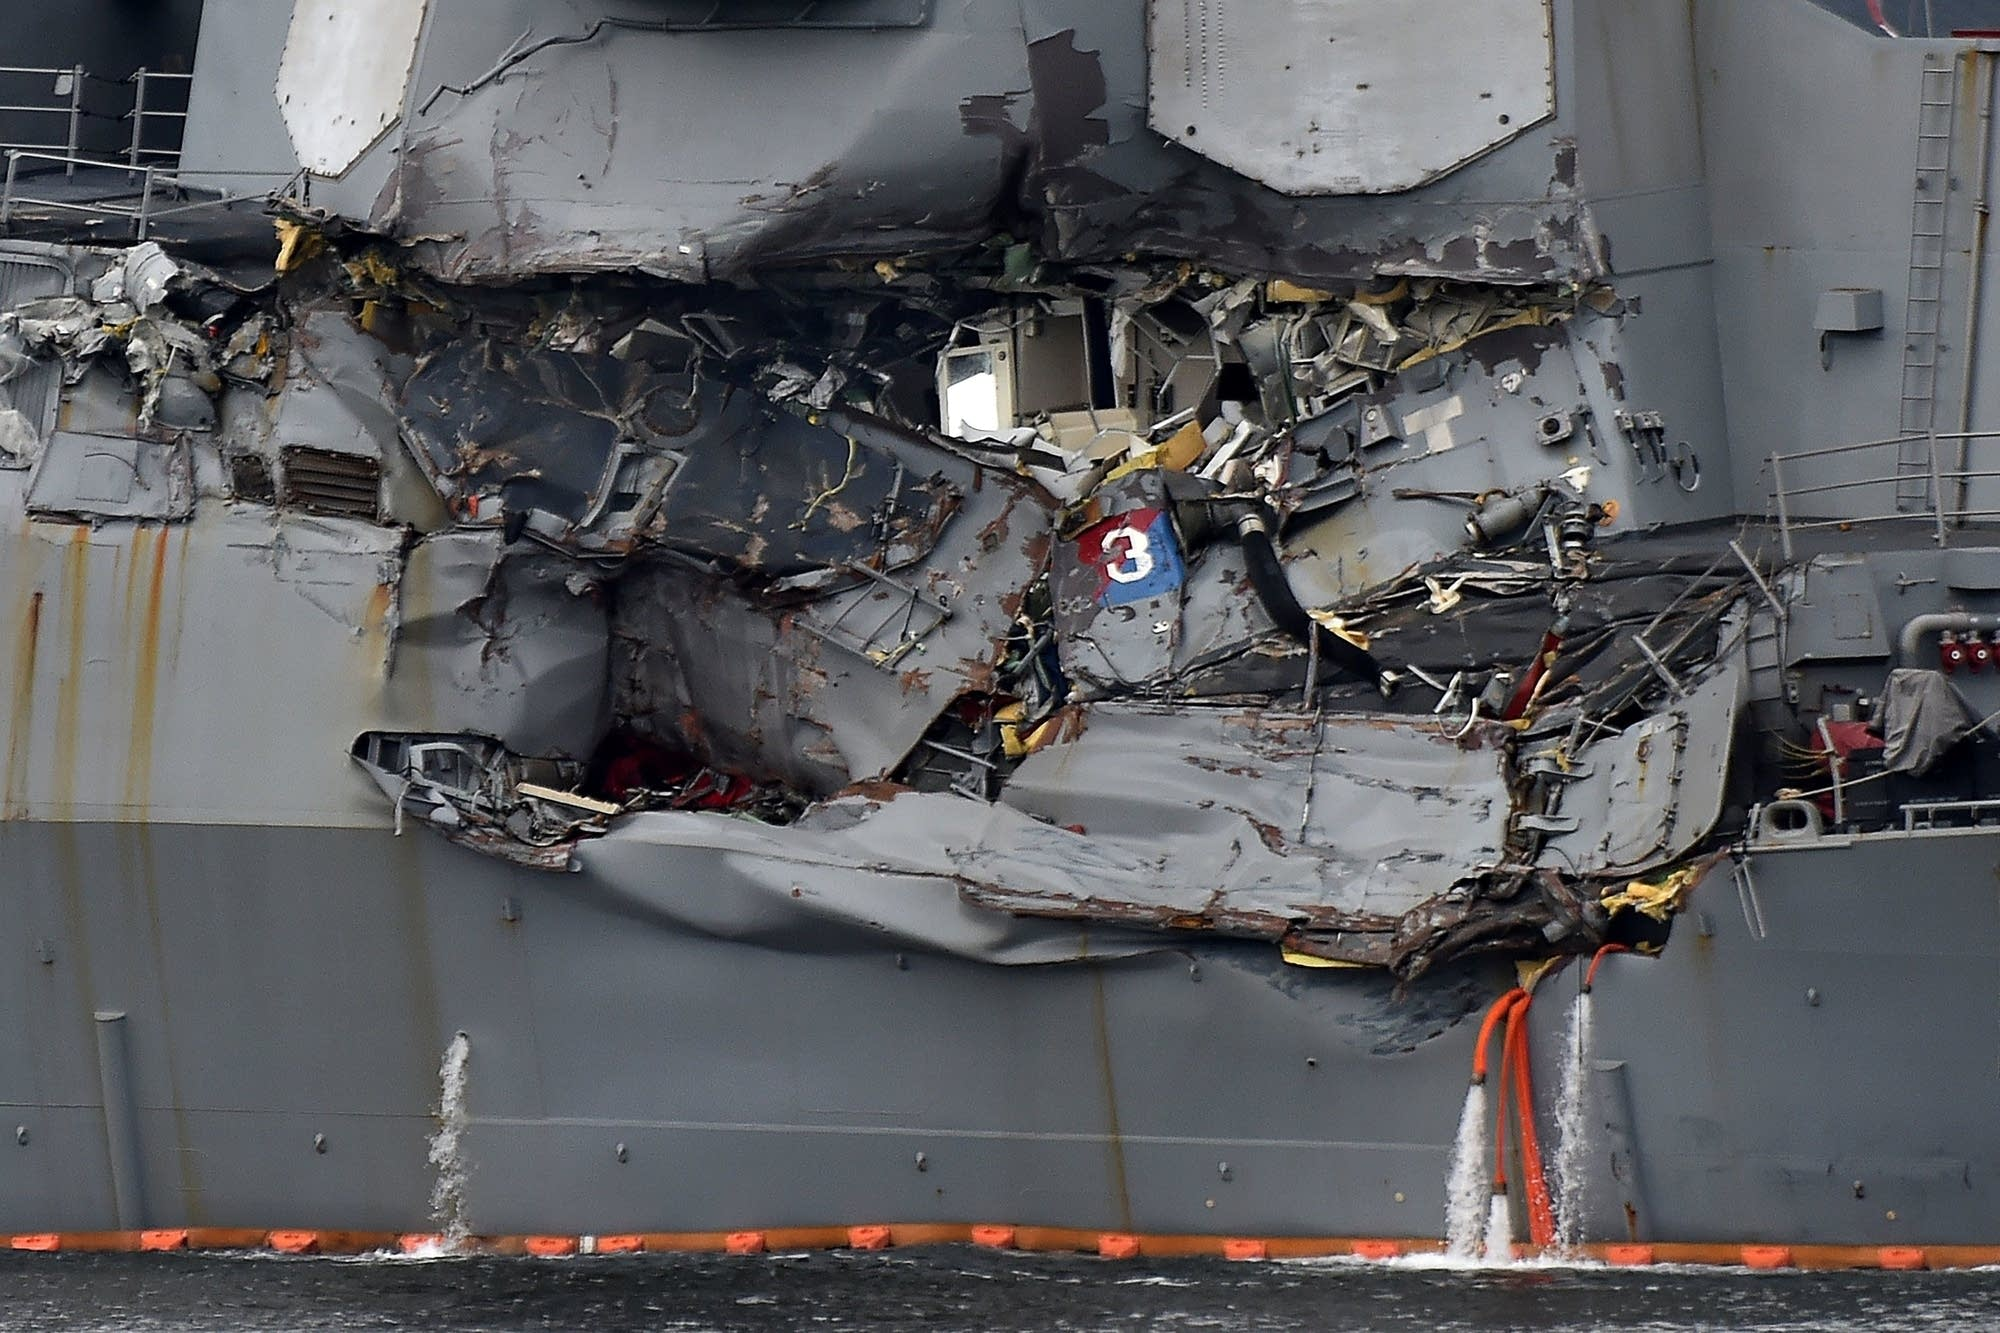 Damage to the guided missile destroyer USS Fitzgerald